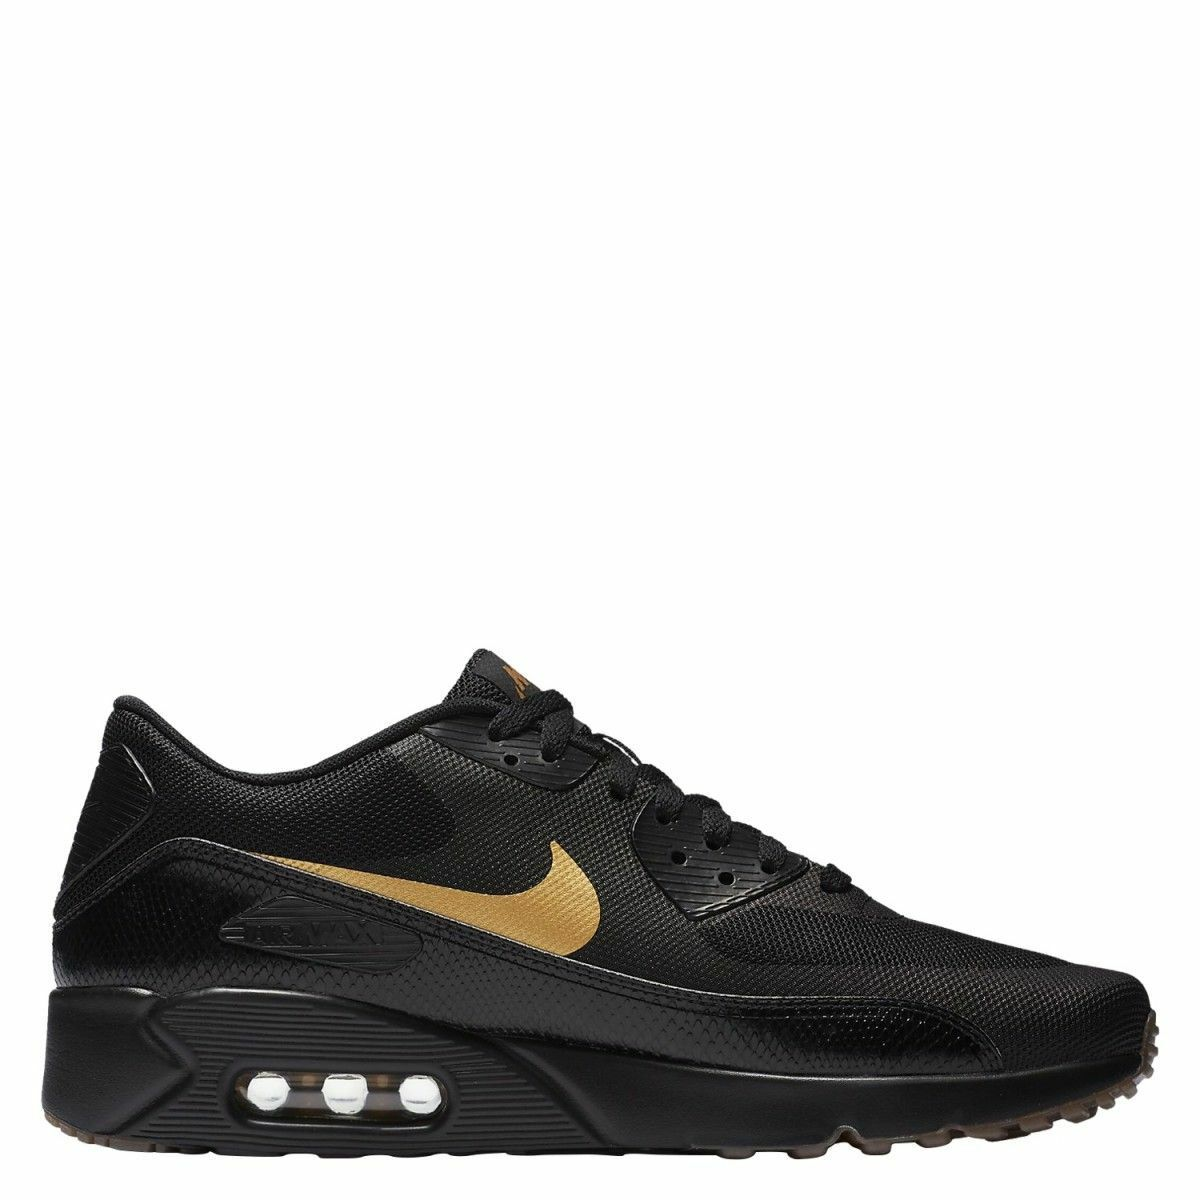 nike nike nike air max 90 ultra indispensable 875695-016 noir de l'or m 403a60